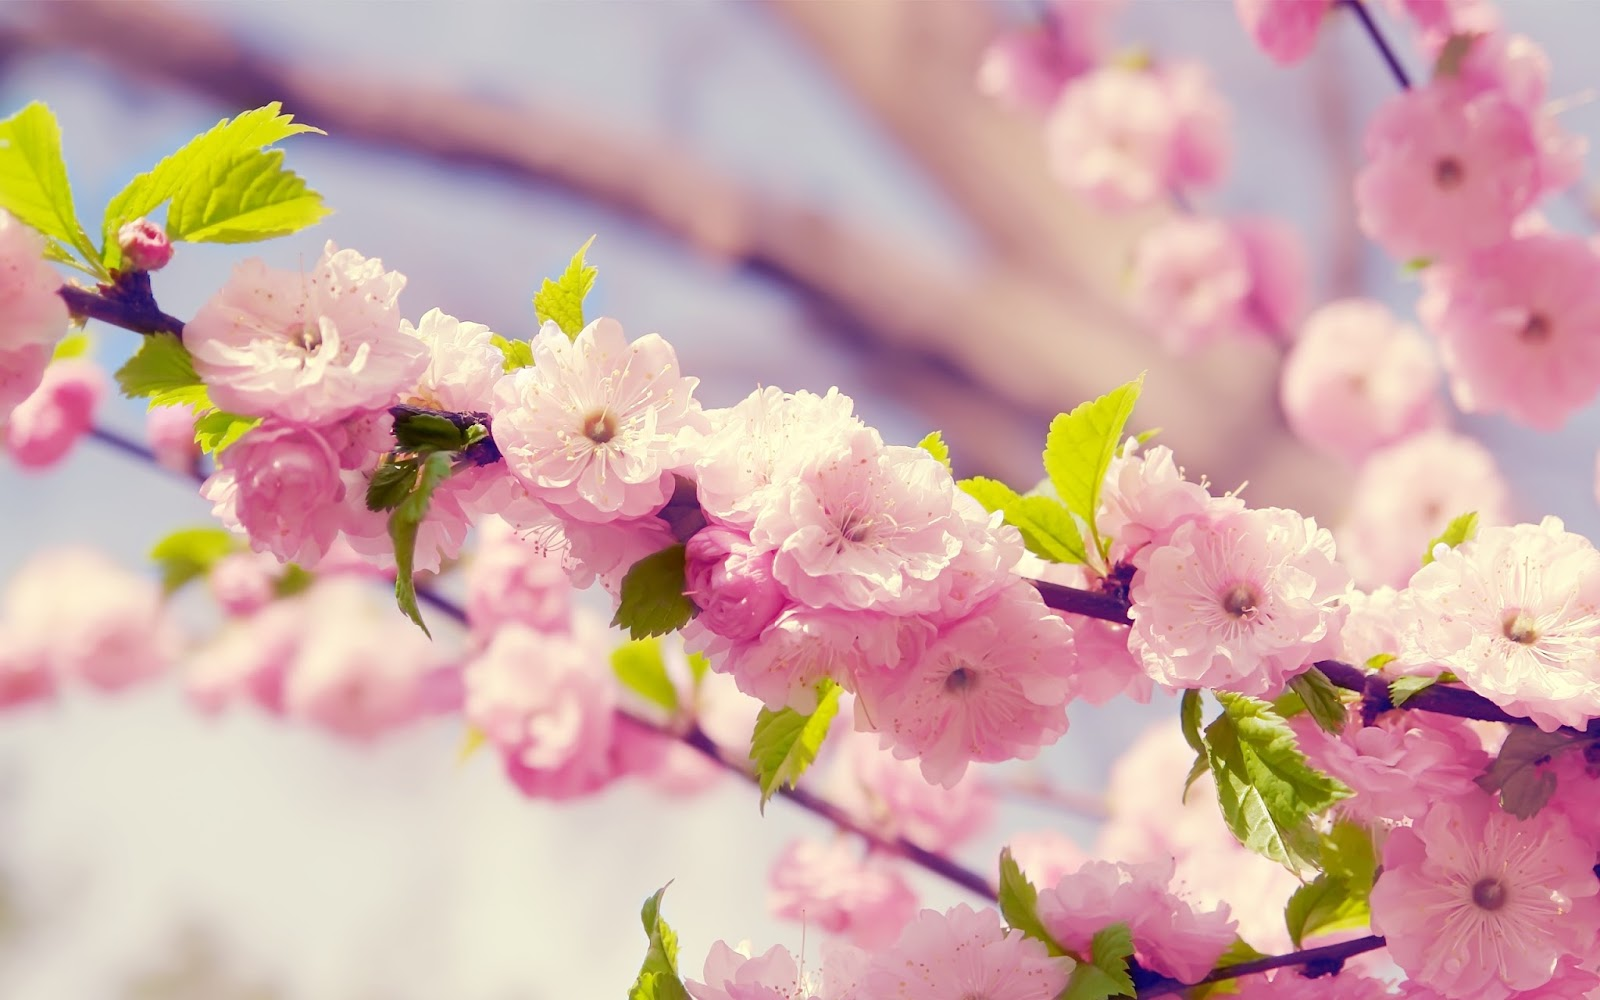 100 Hd Spring Wallpapers 4k For Desktop Free 2020 Page 5 Of 9 We 7